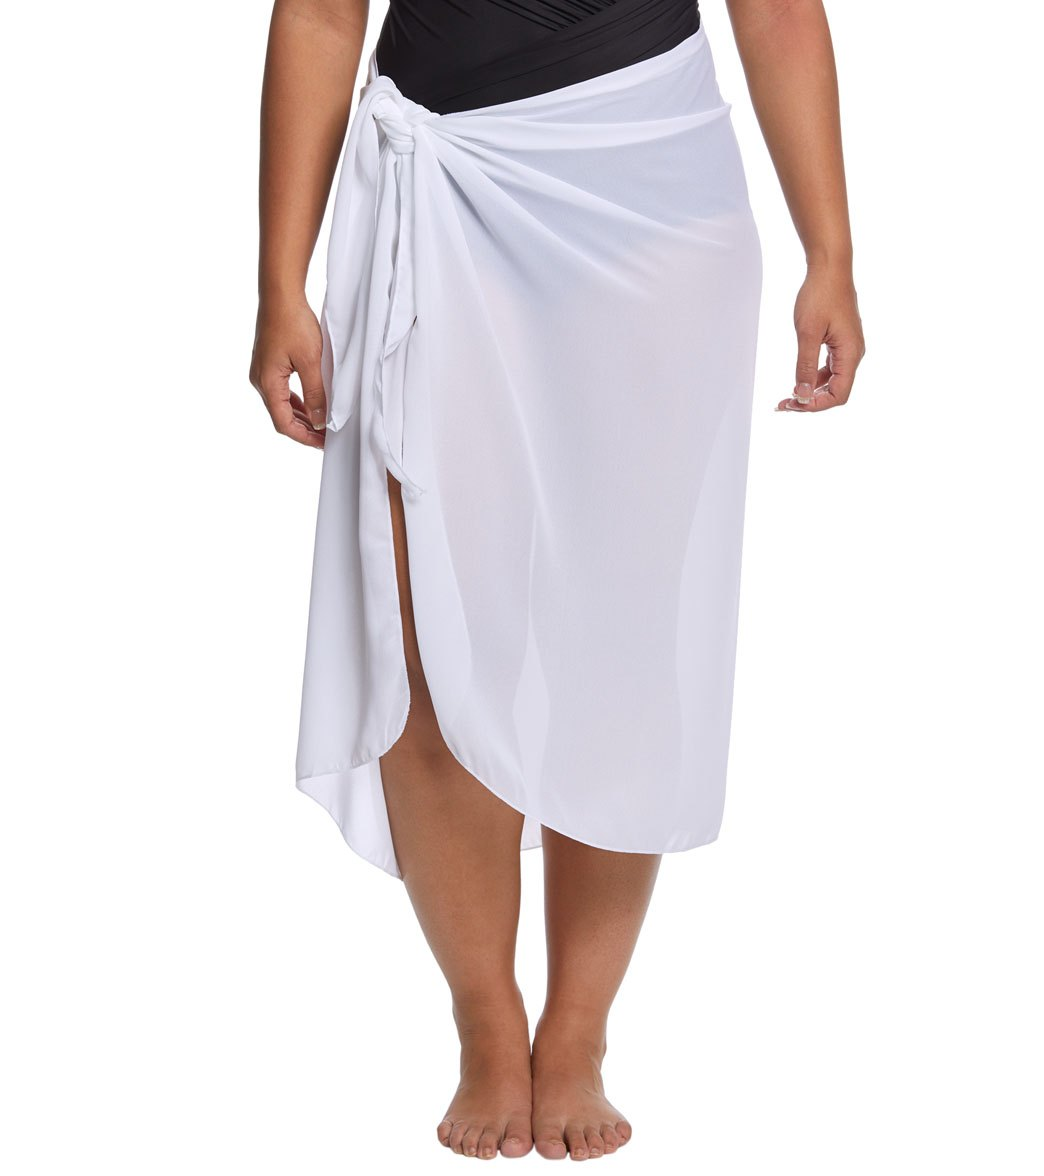 827767a6ee9f7 Dotti Plus Size Sarong, So Right Long Pareo at SwimOutlet.com